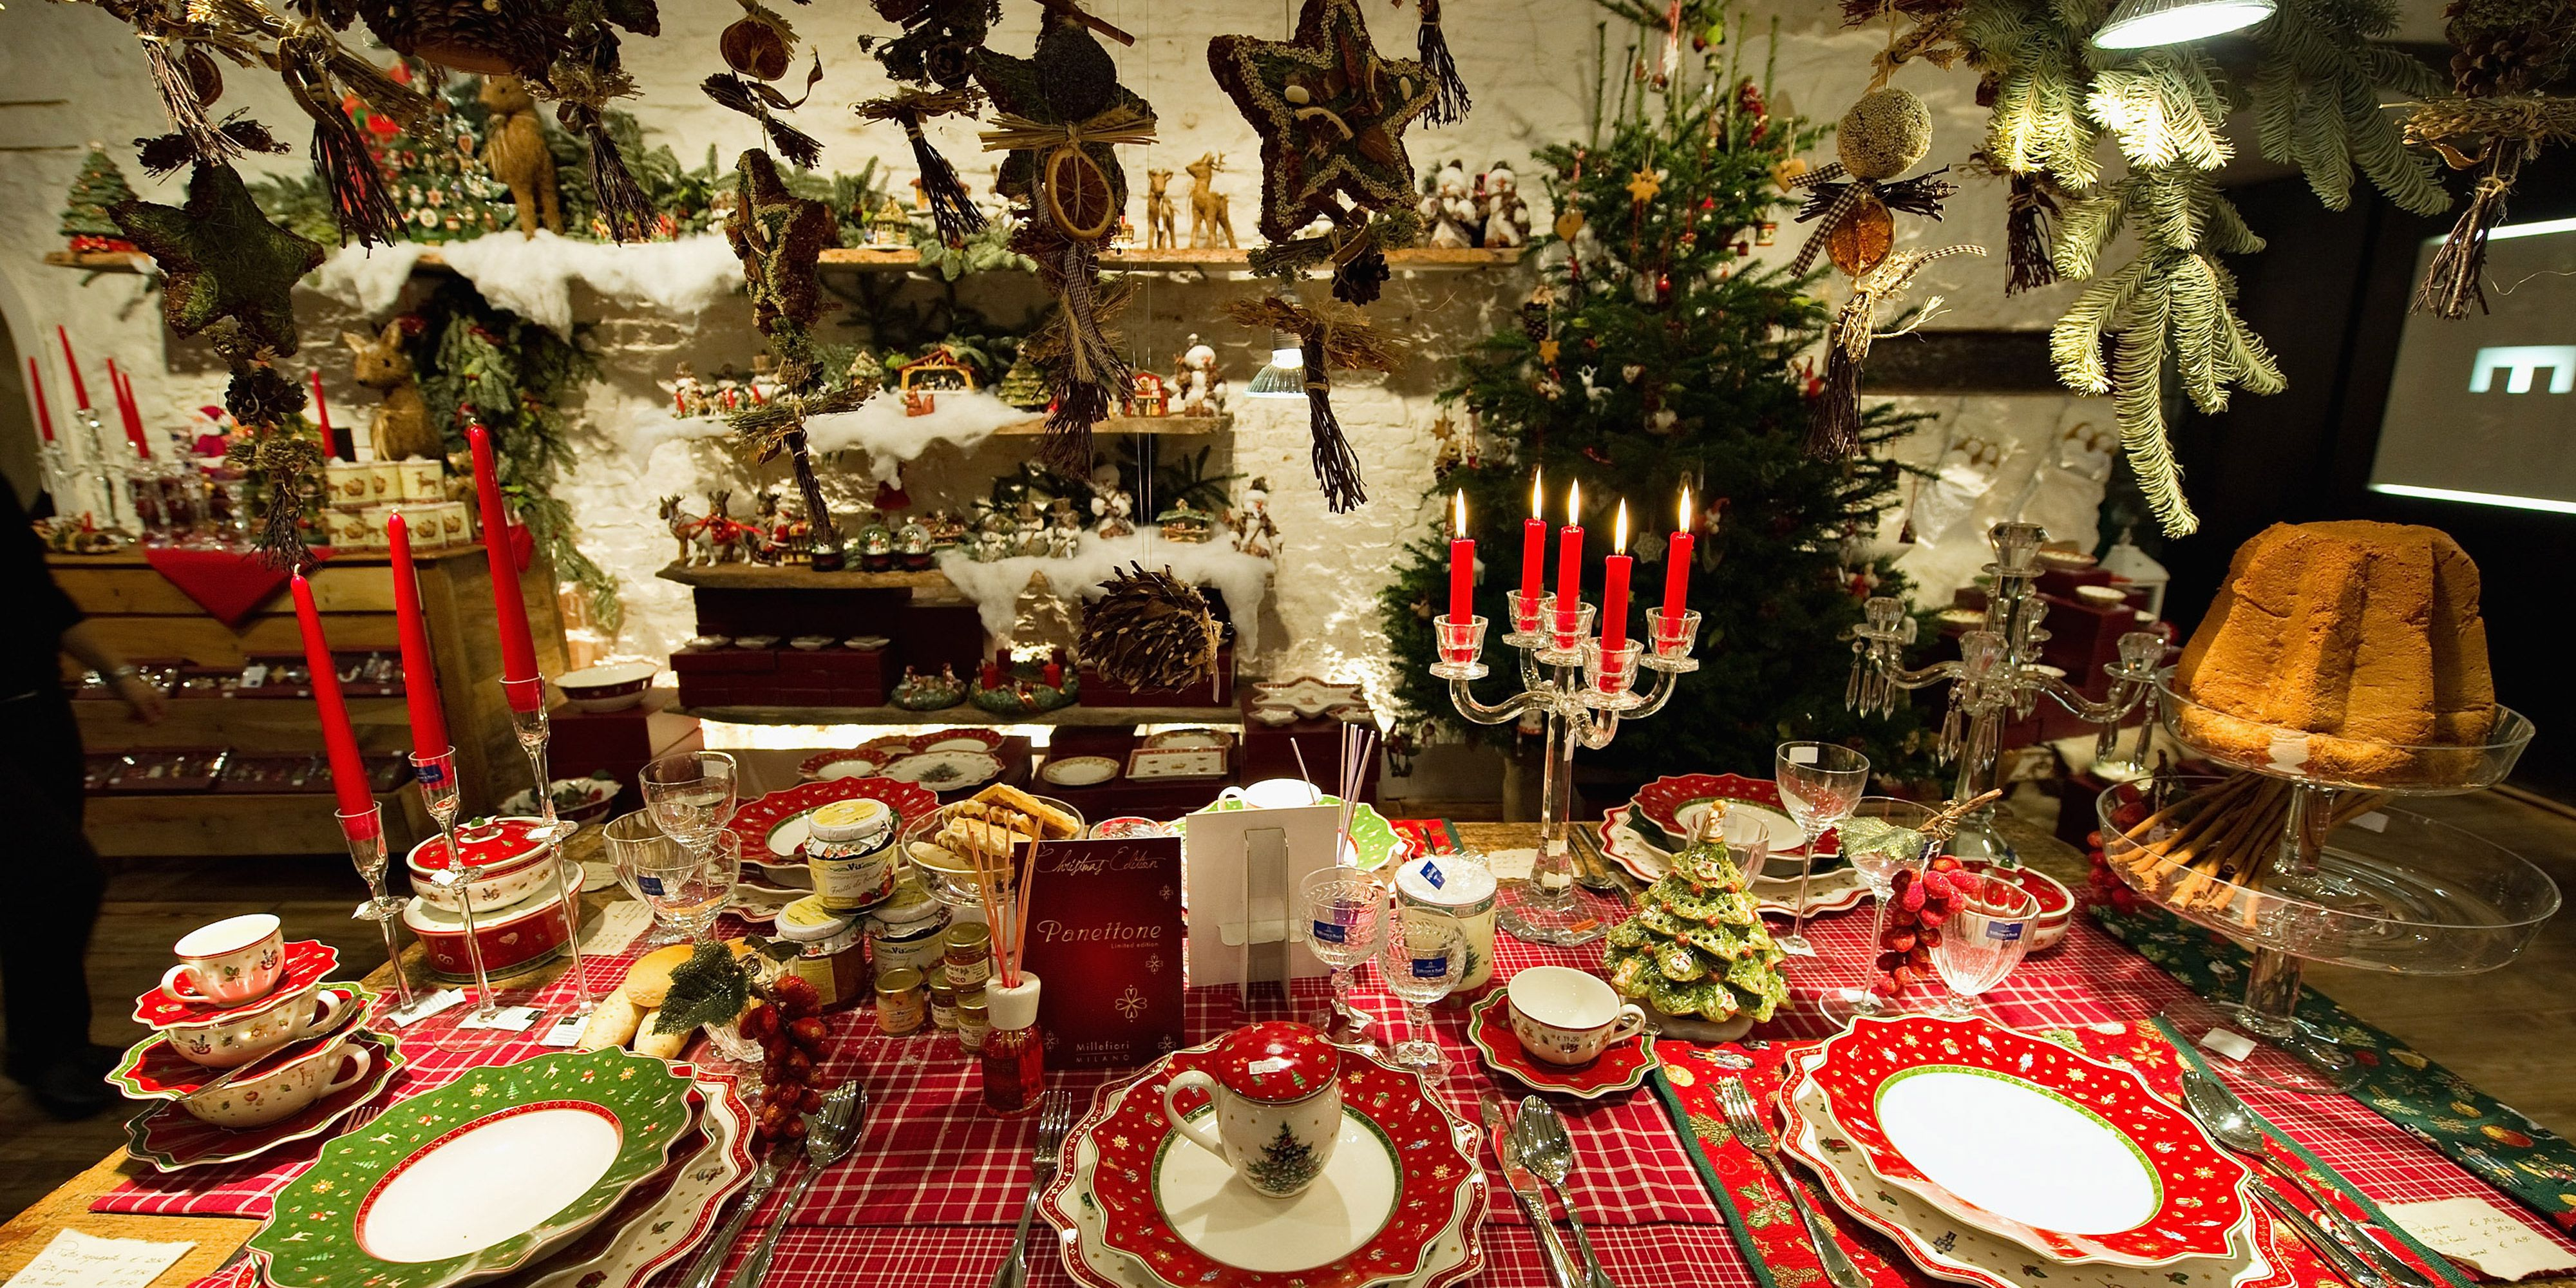 Enjoyable 35 Elegant Christmas Table Settings Stylish Holiday Table Home Interior And Landscaping Ologienasavecom